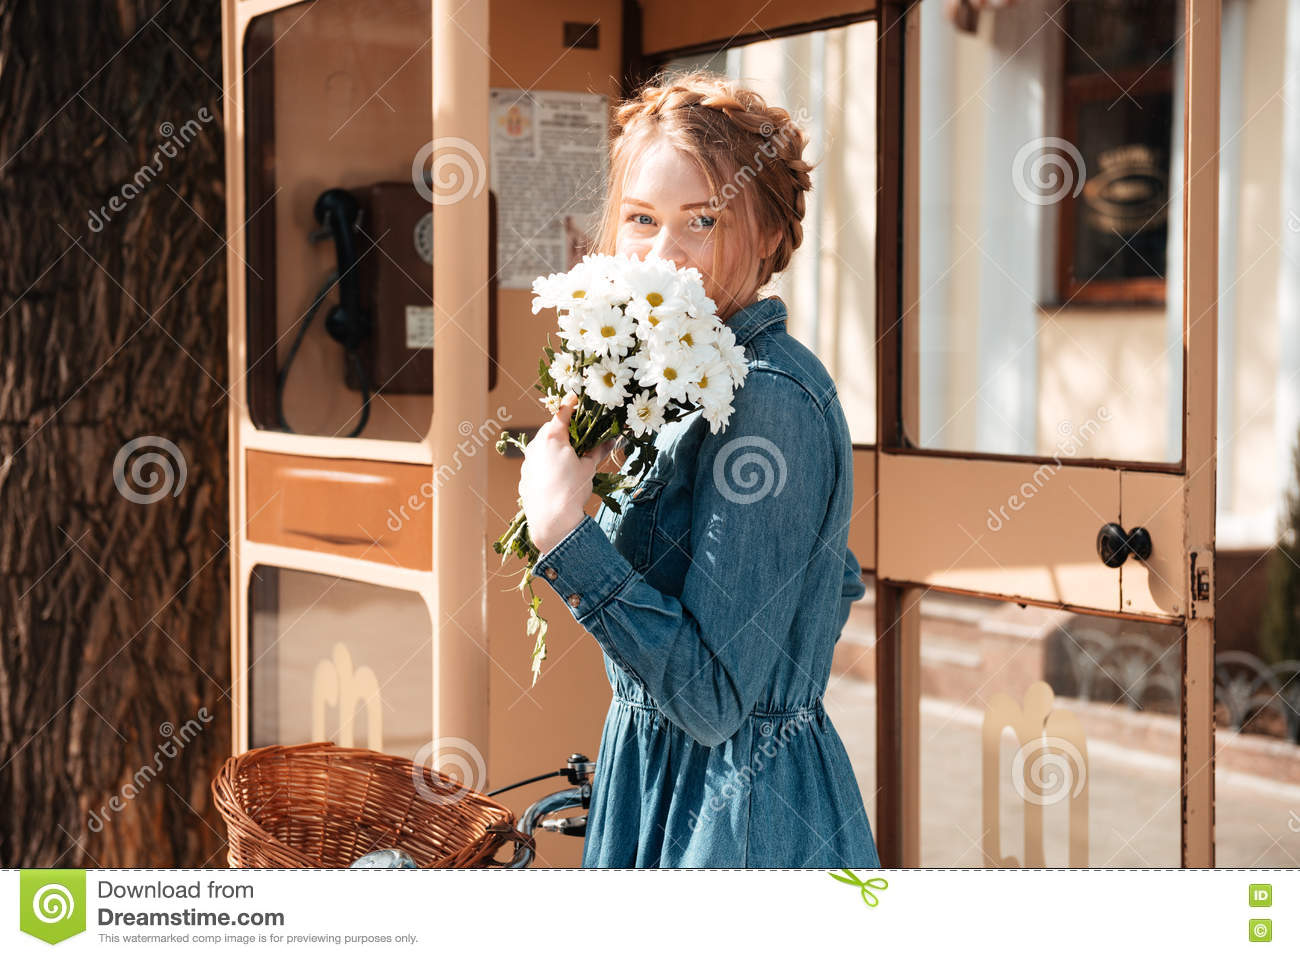 Woman with bicycle and bouquet of camomiles standing on street